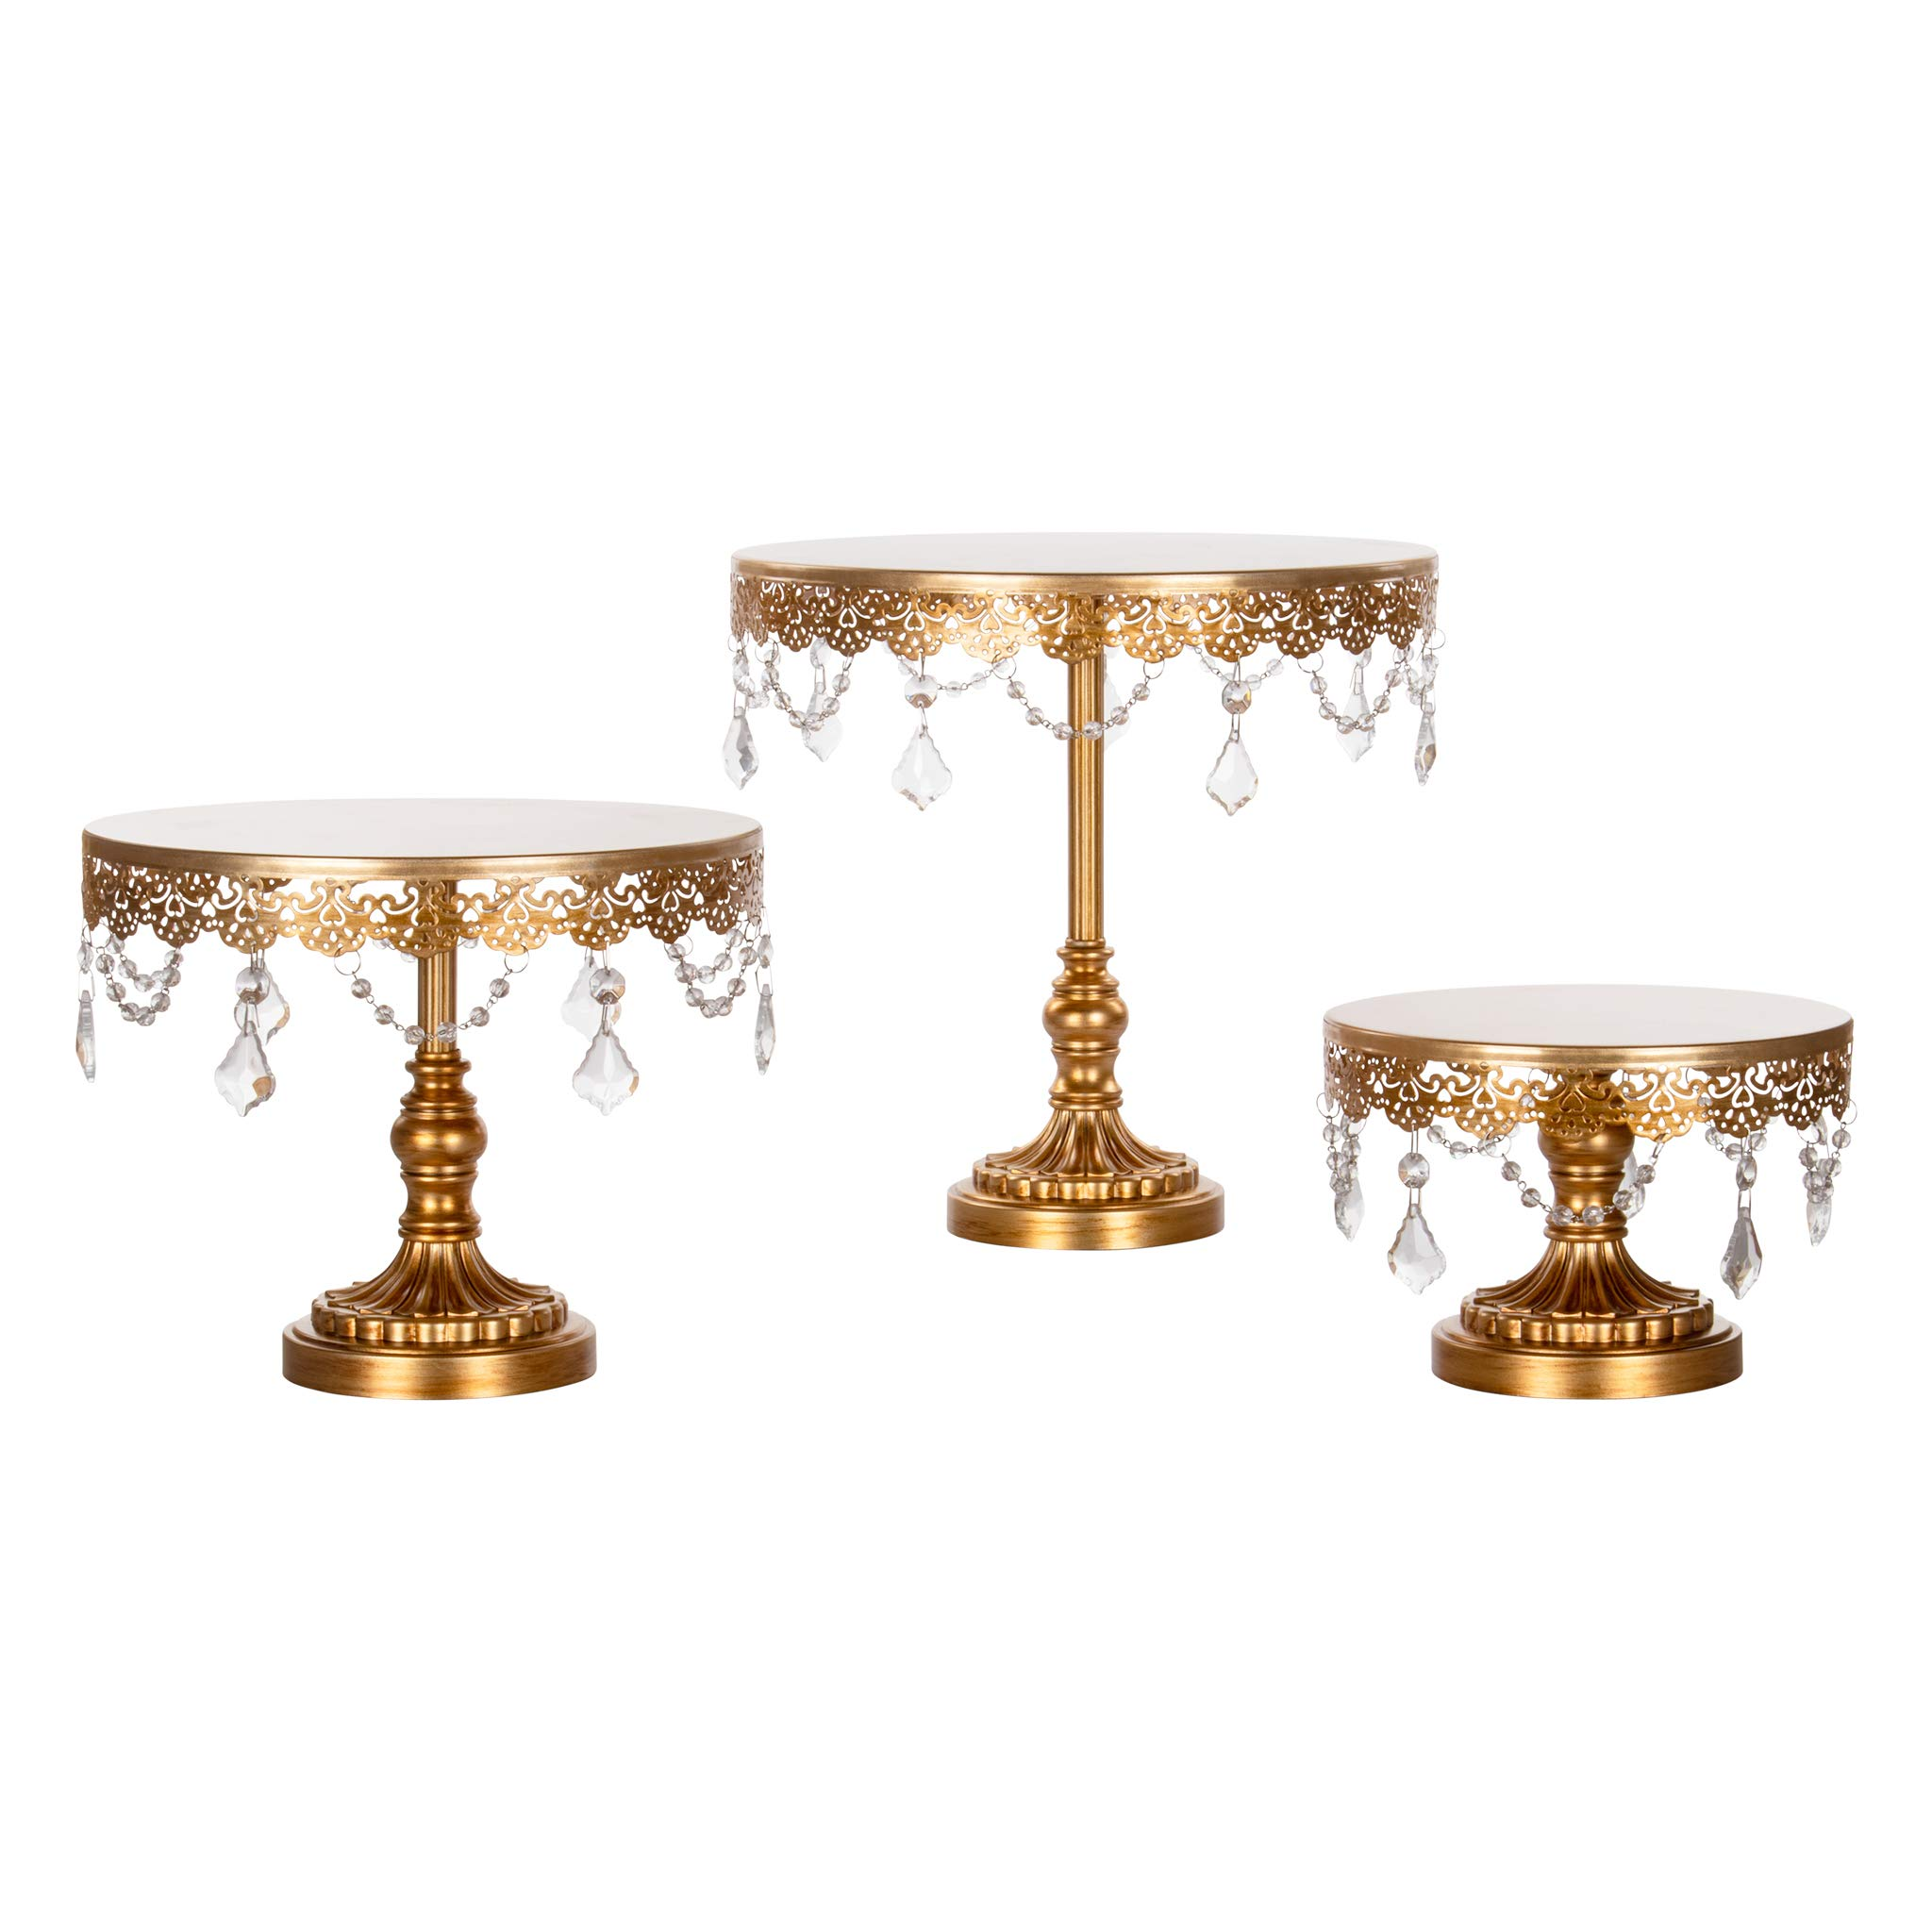 Sophia Cake Stand Set of 3, Round Metal Plate Dessert Cupcake Pedestal Wedding Party Display with Glass Crystals (Gold)